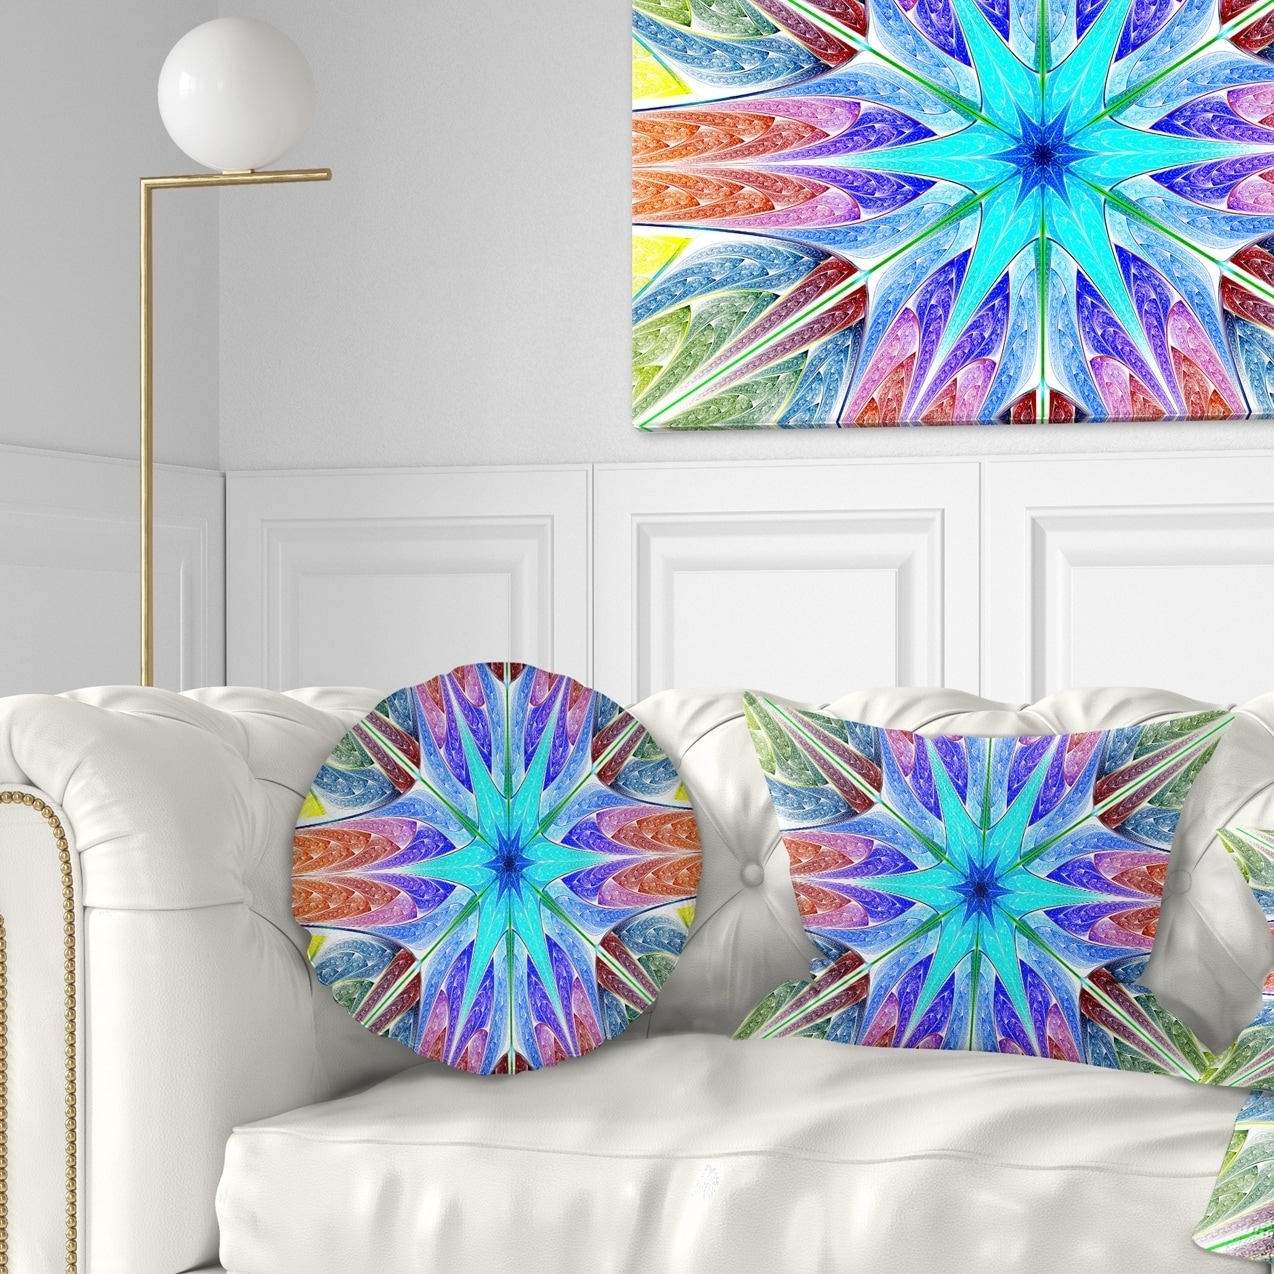 Design Art Designart Multi Color Pink Fractal Stained Glass Abstract Throw Pillow 20 Inches Round Large Walmart Com Walmart Com